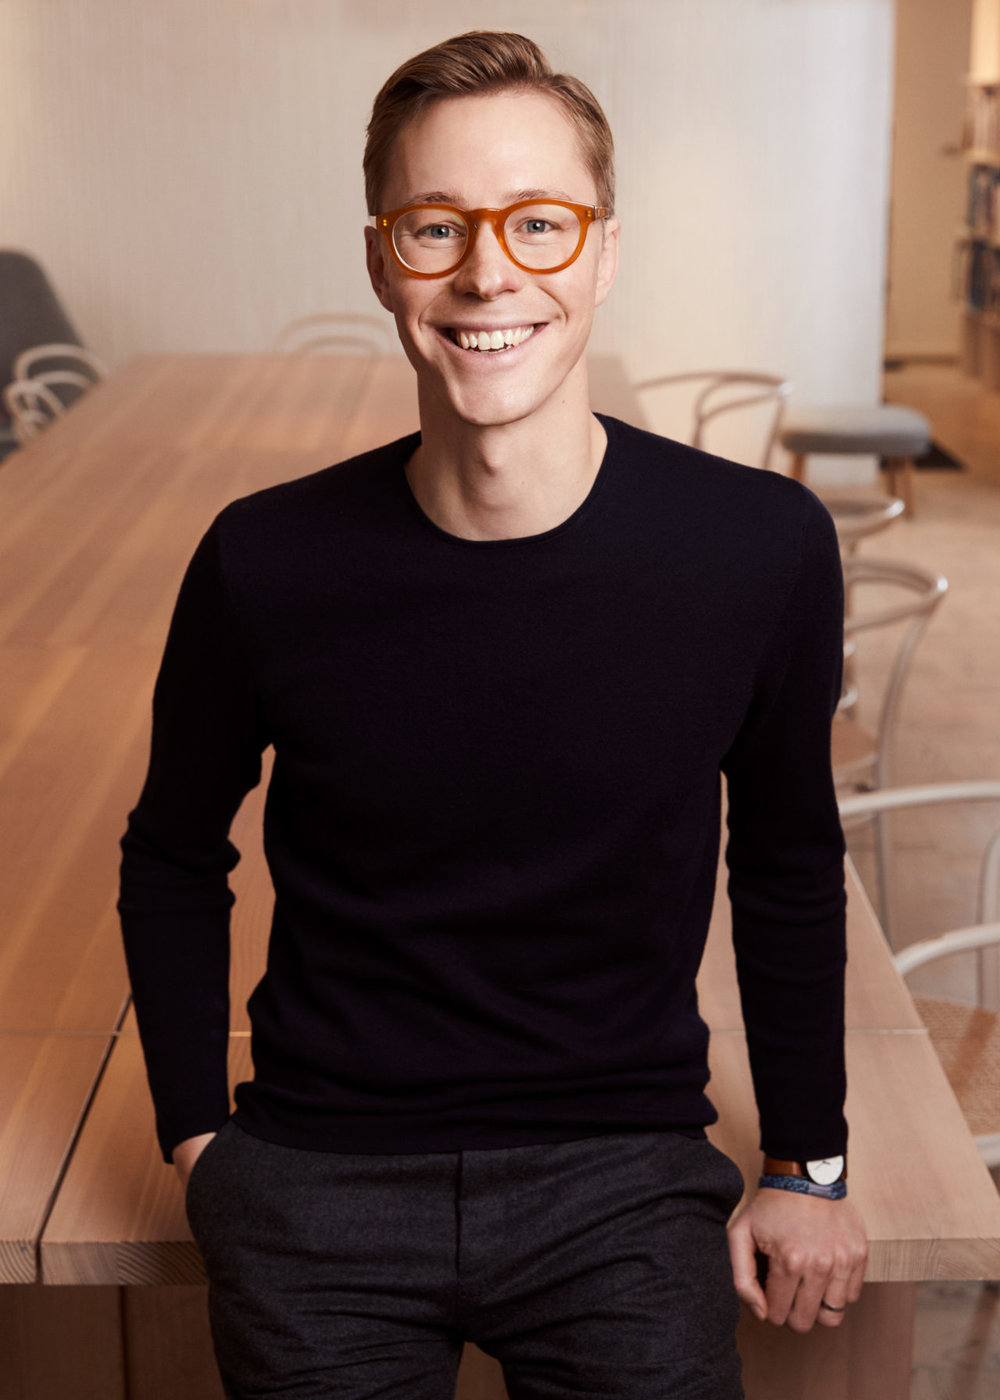 Erik Bang,  Innovation Lead at H&M Foundation